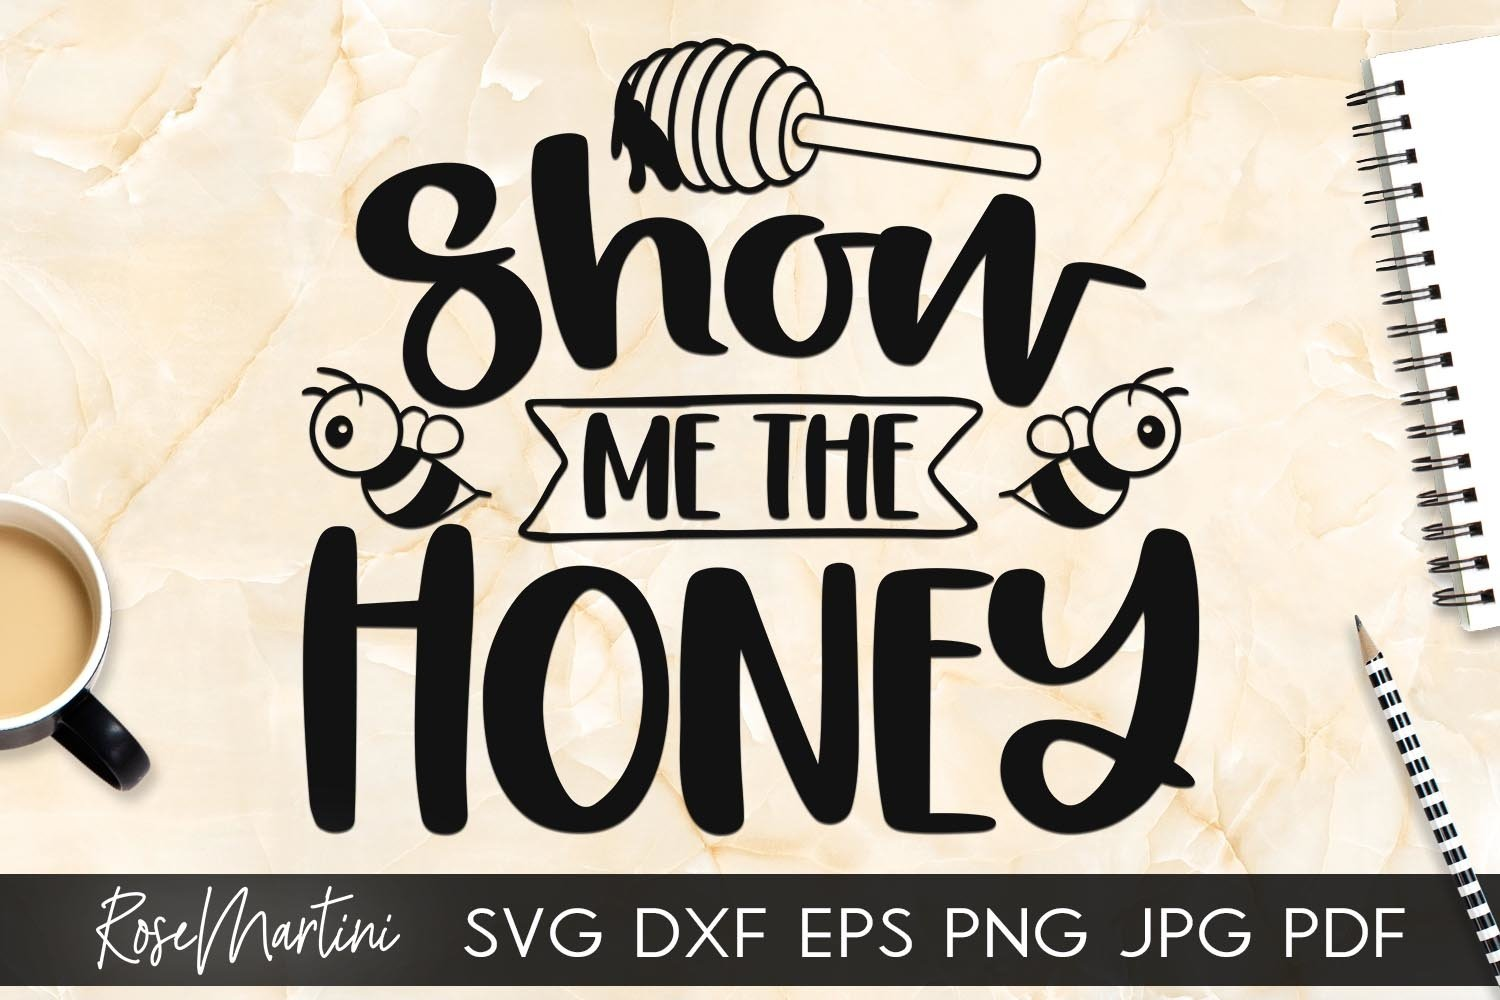 Show Me The Honey SVG Queen Bee SVG Bee Pun Bumble Bee SVG example image 5